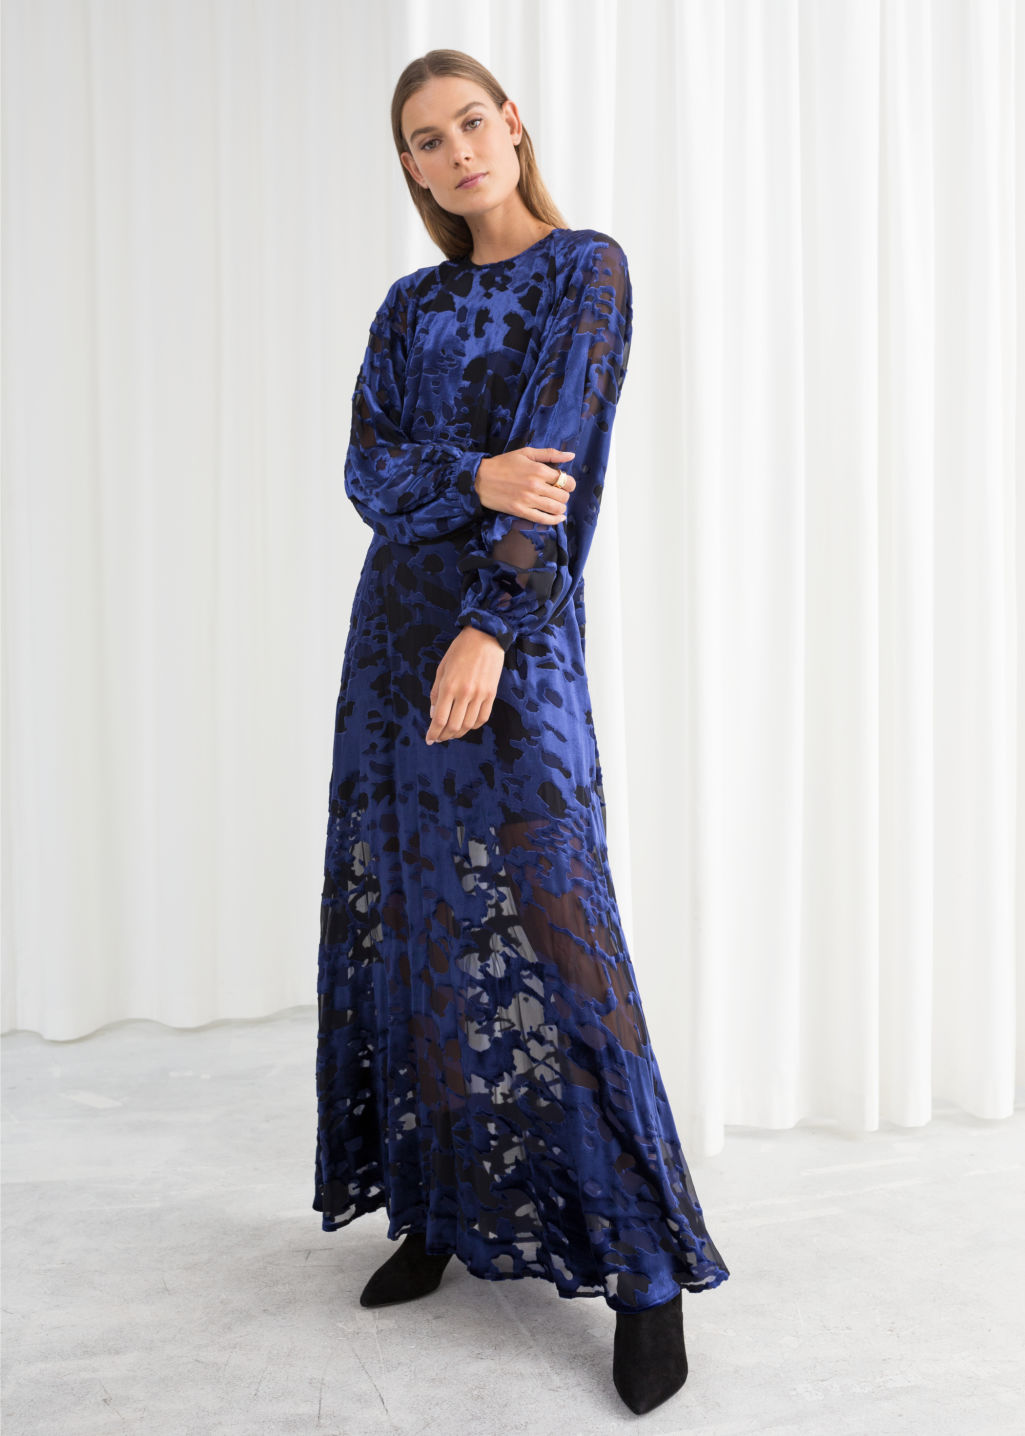 3dc5c7c1cfa31 Sheer Velvet Maxi Dress - Blue   Black - Maxi dresses -   Other Stories